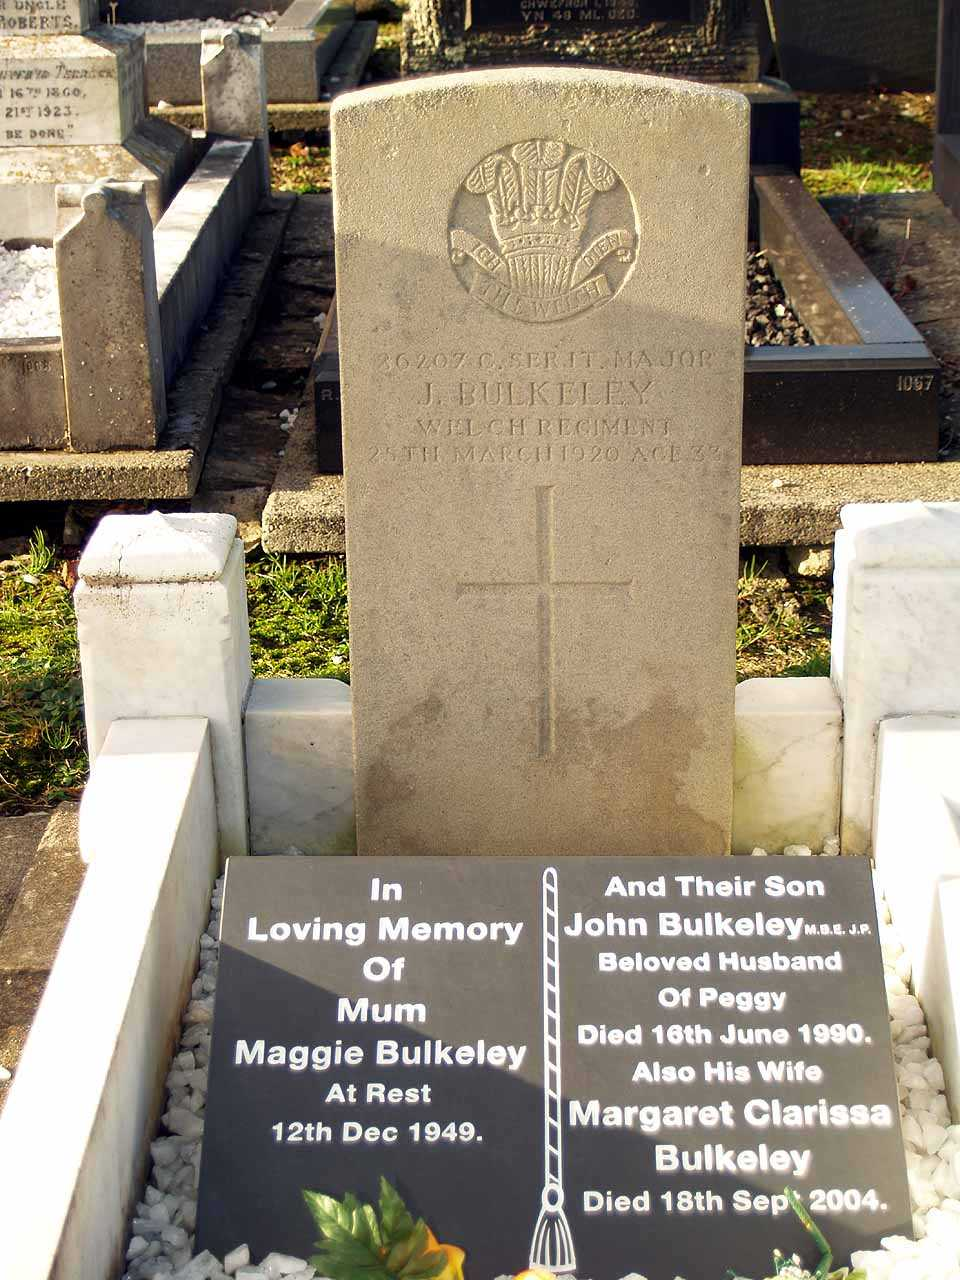 John Bulkeley Company Sergeant Major Welch Regiment died 1920 aged 33